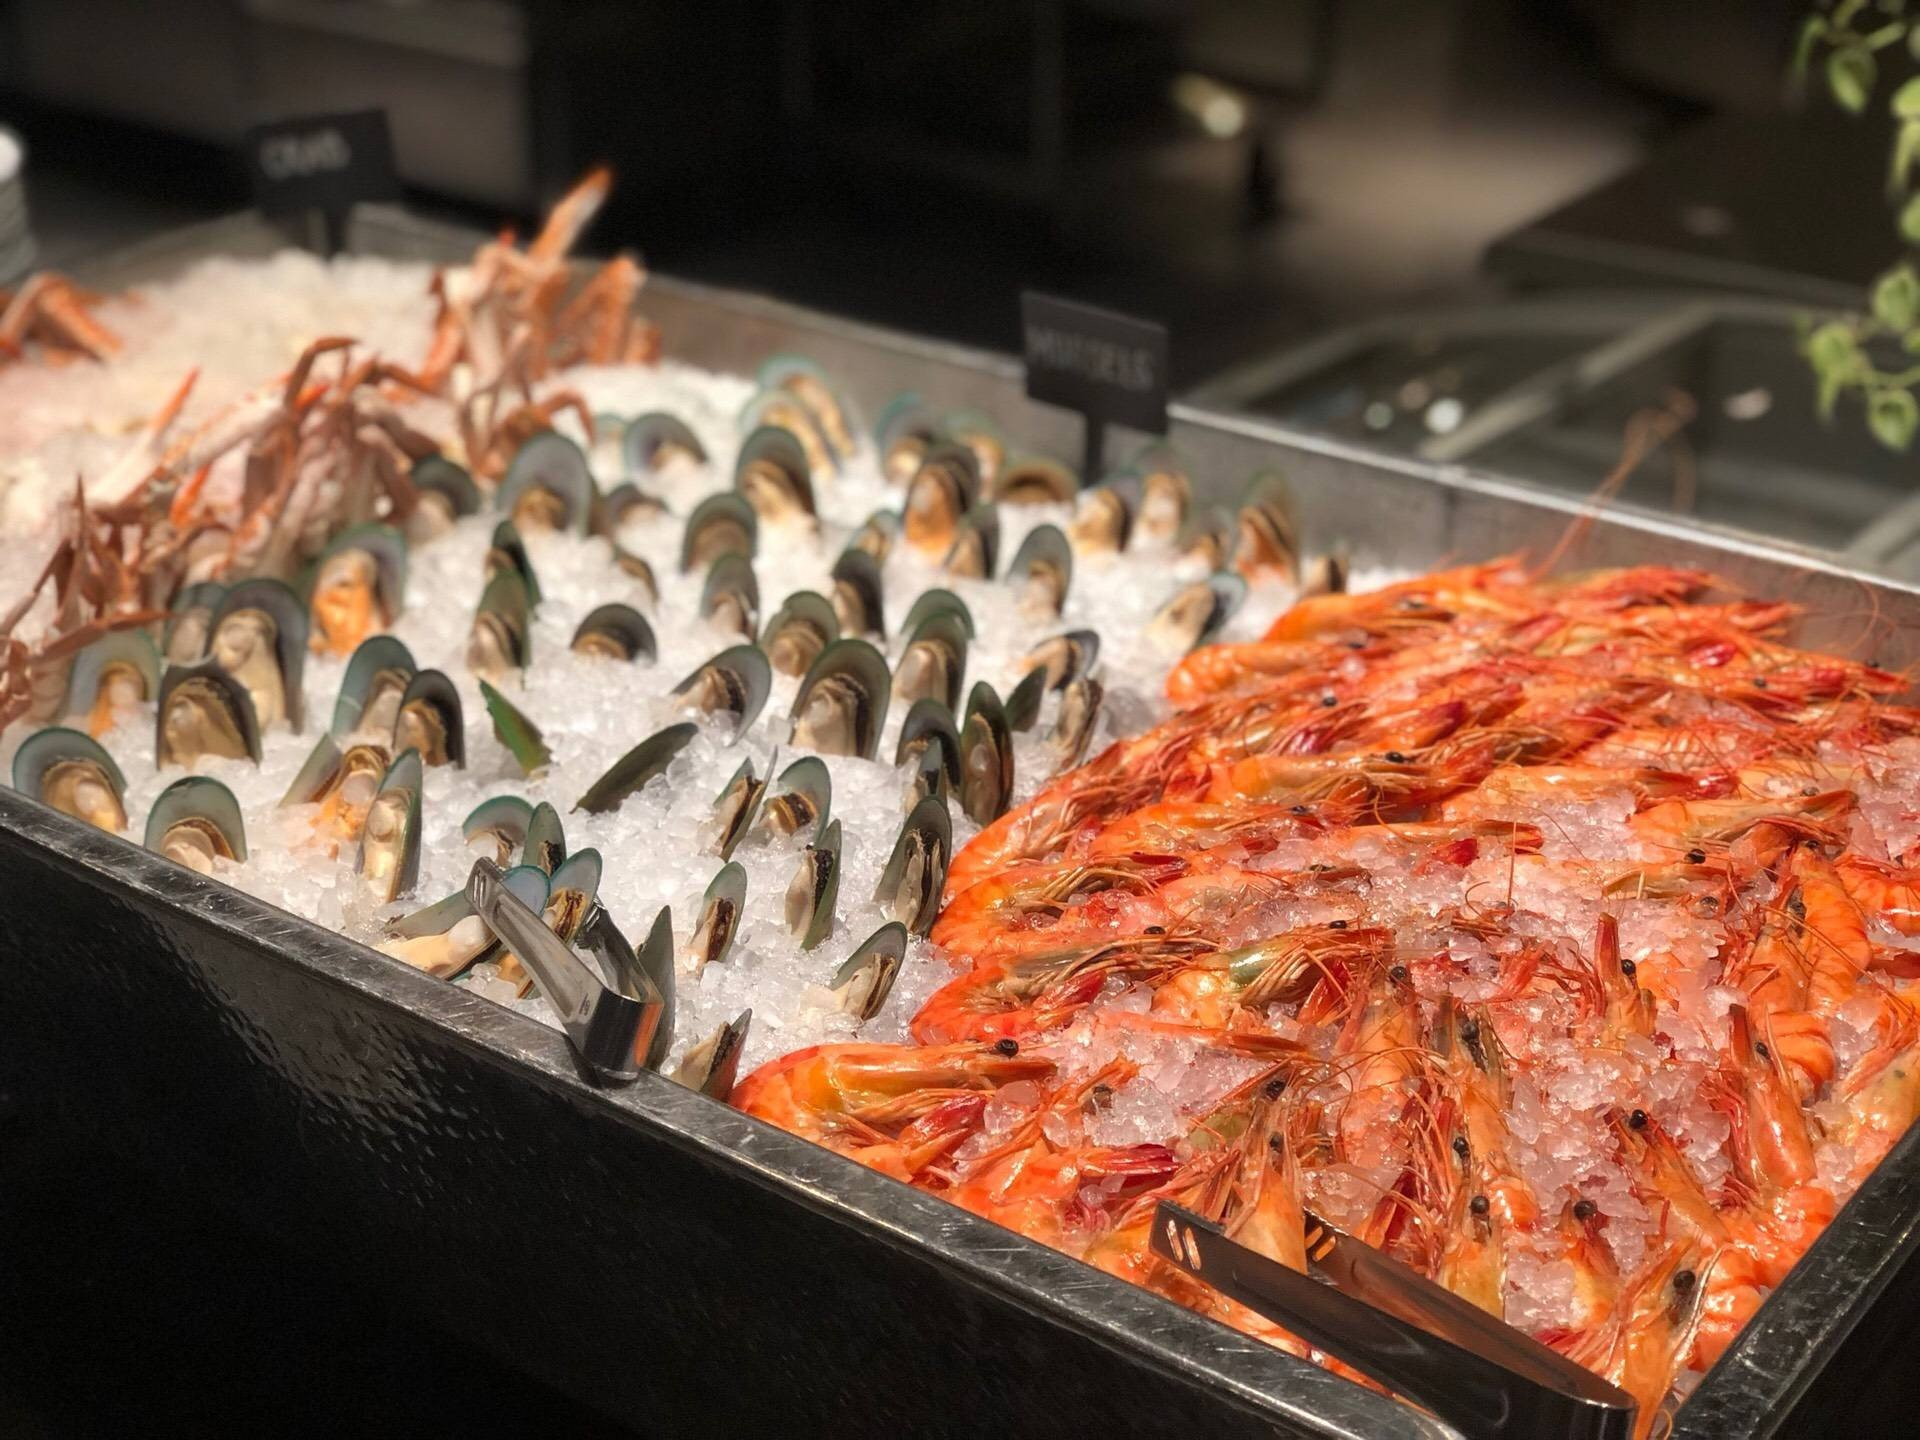 Starz Diner - The Great Charcoal BBQ Buffet. Hard Rock Hotel Pattaya